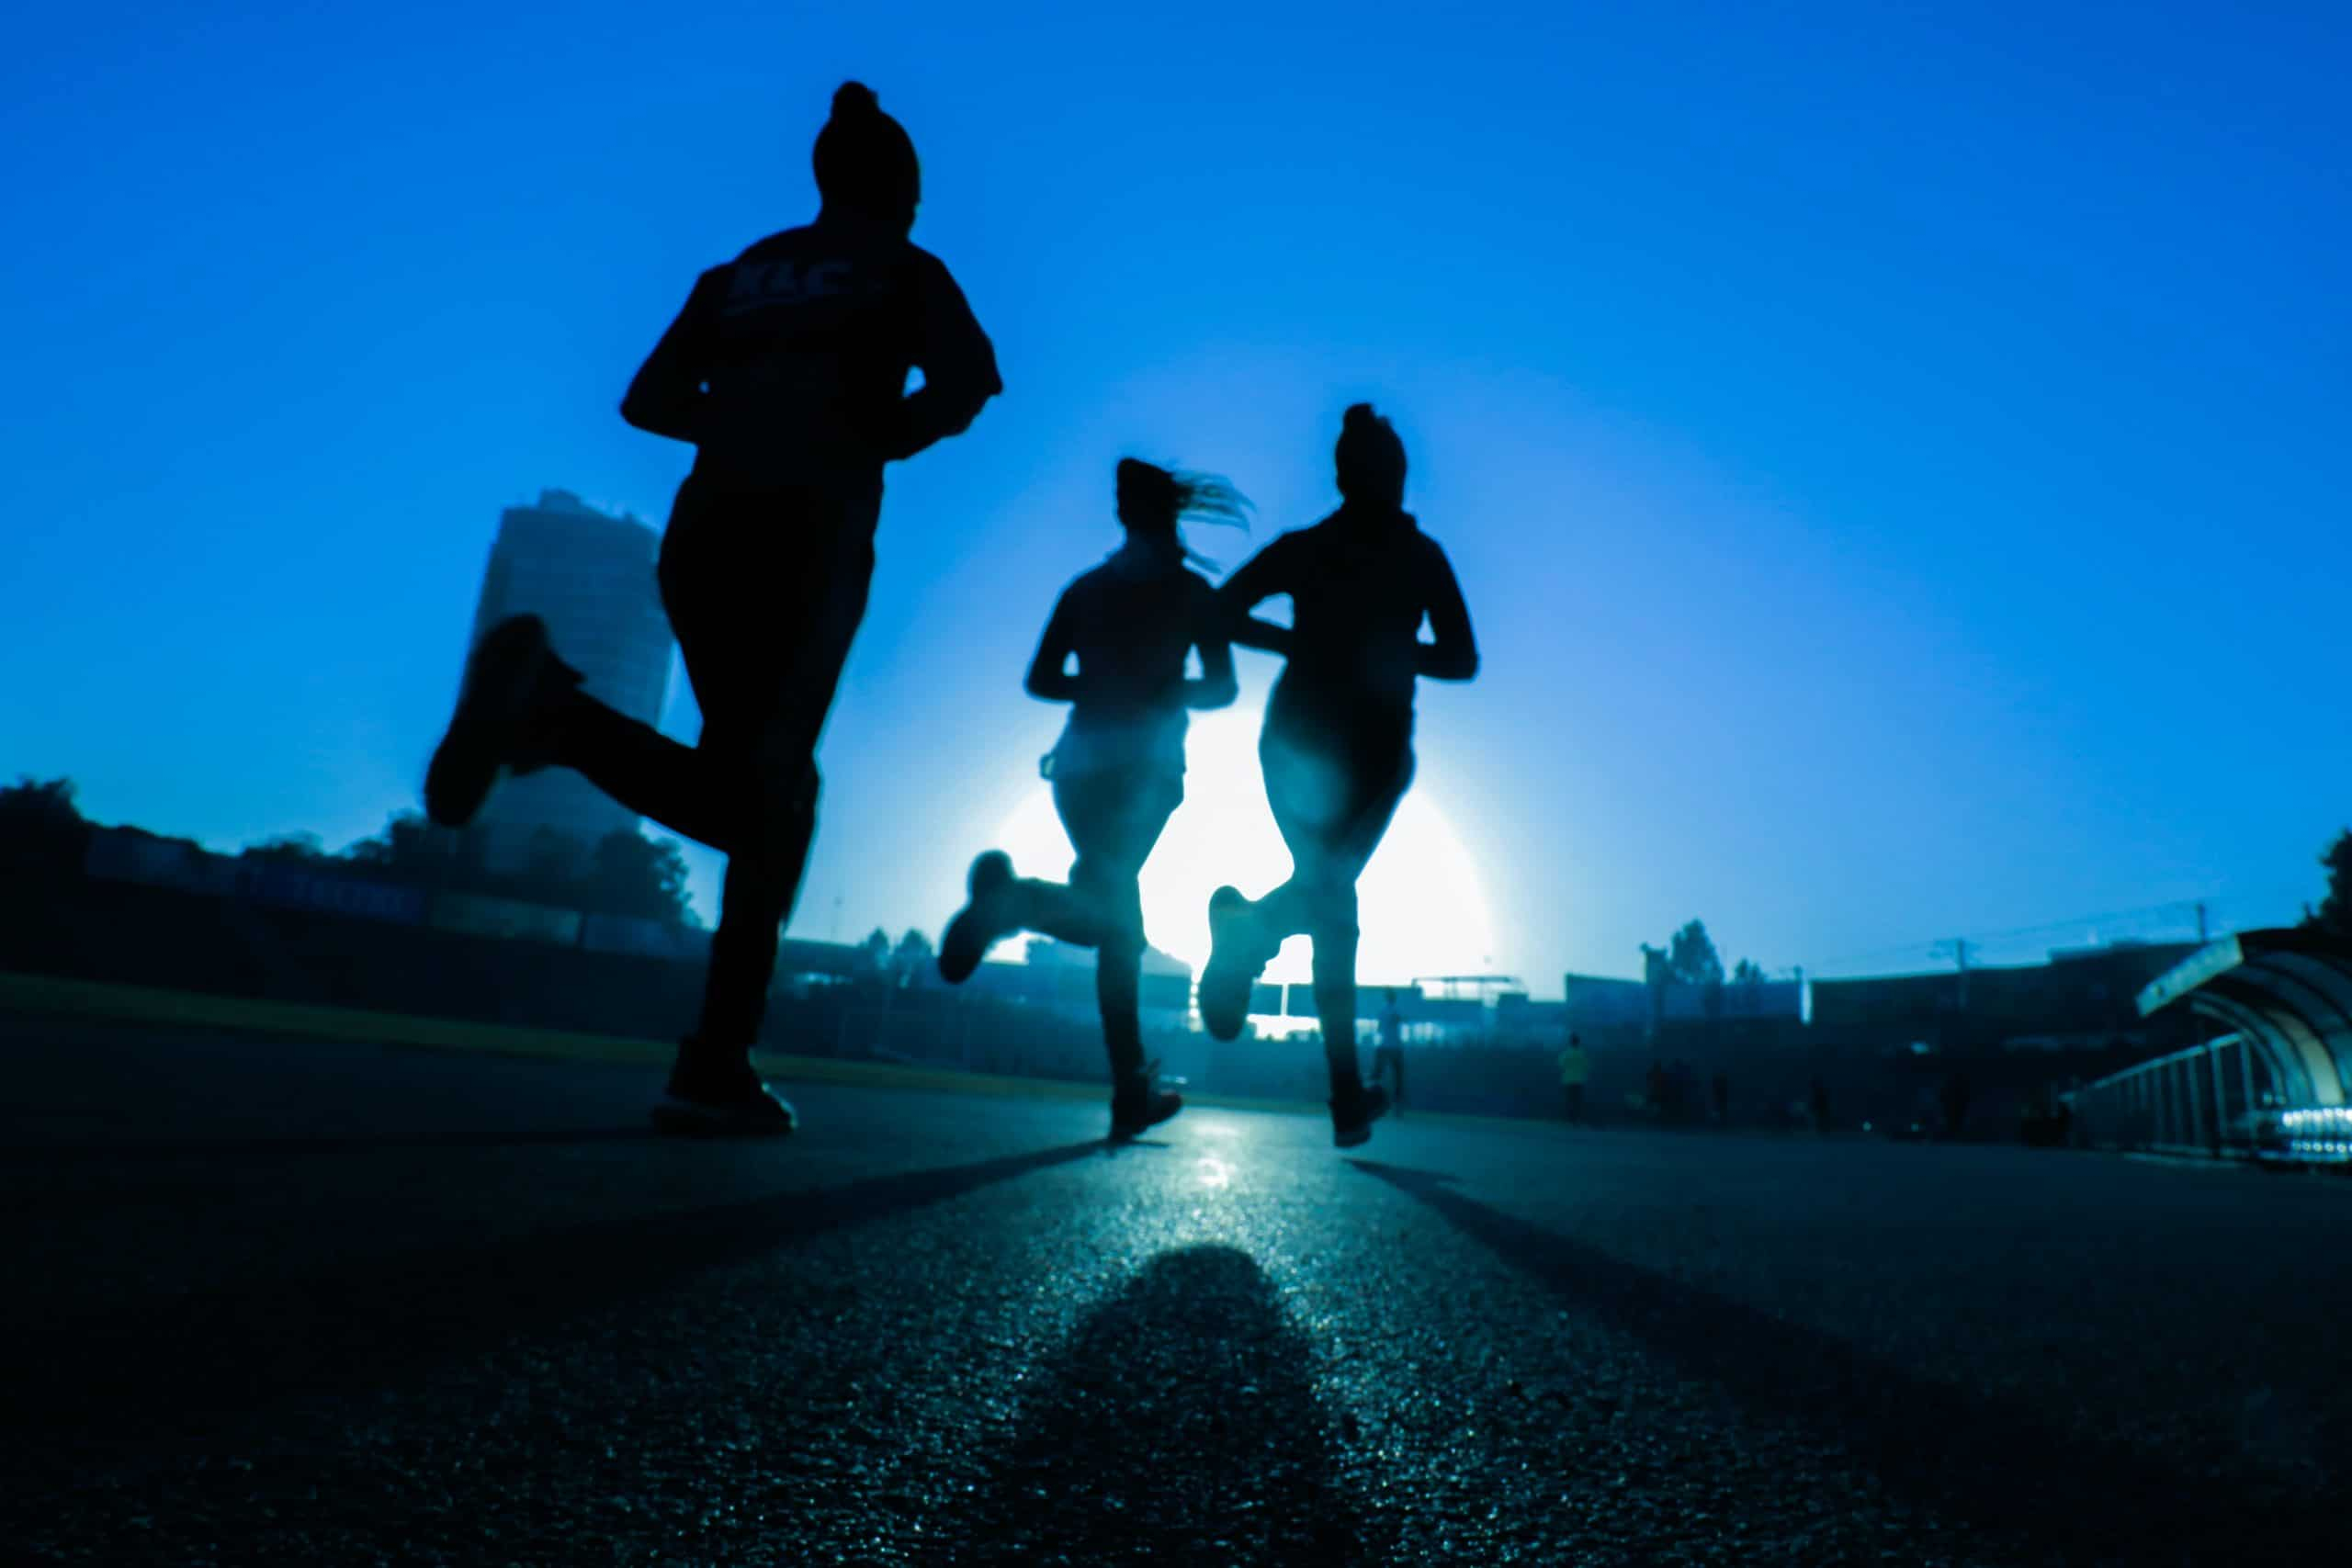 Daily Running Tips - Stay Comfortable While Running